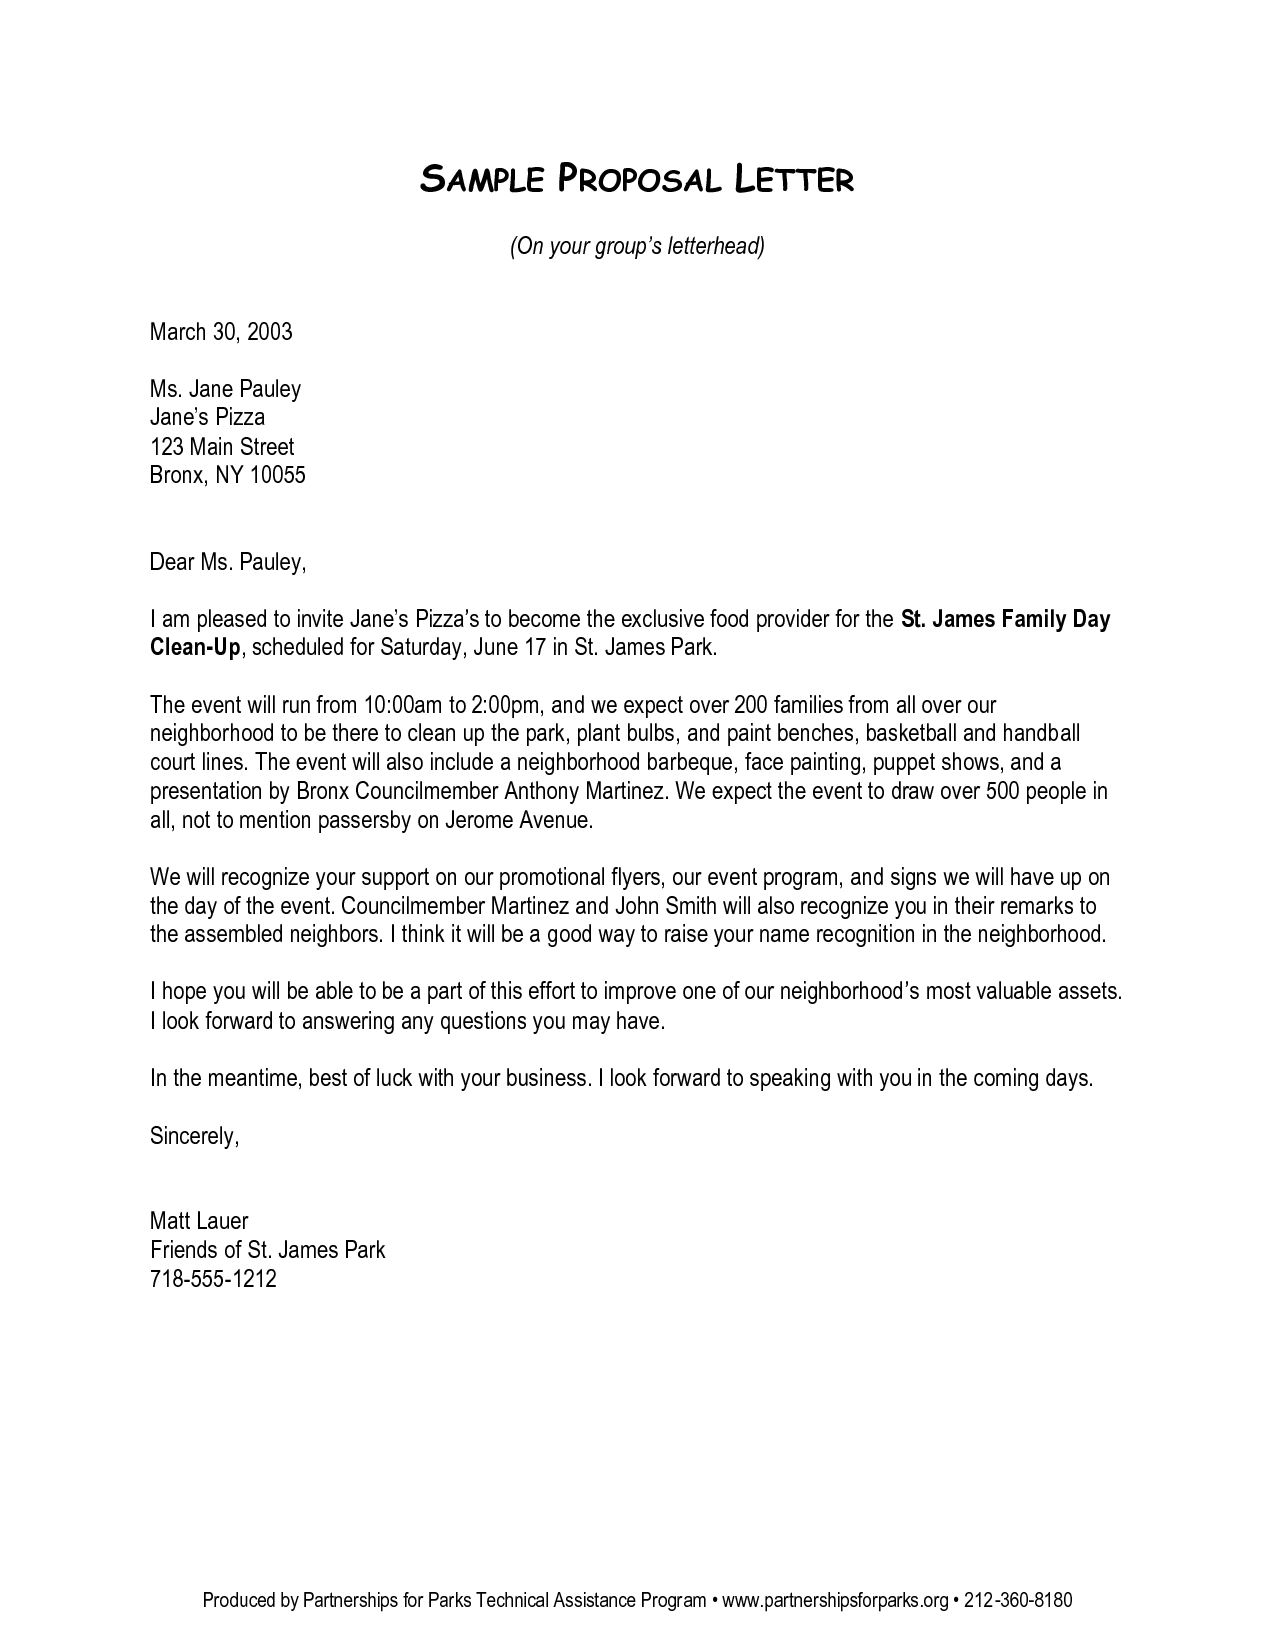 letter of proposal template